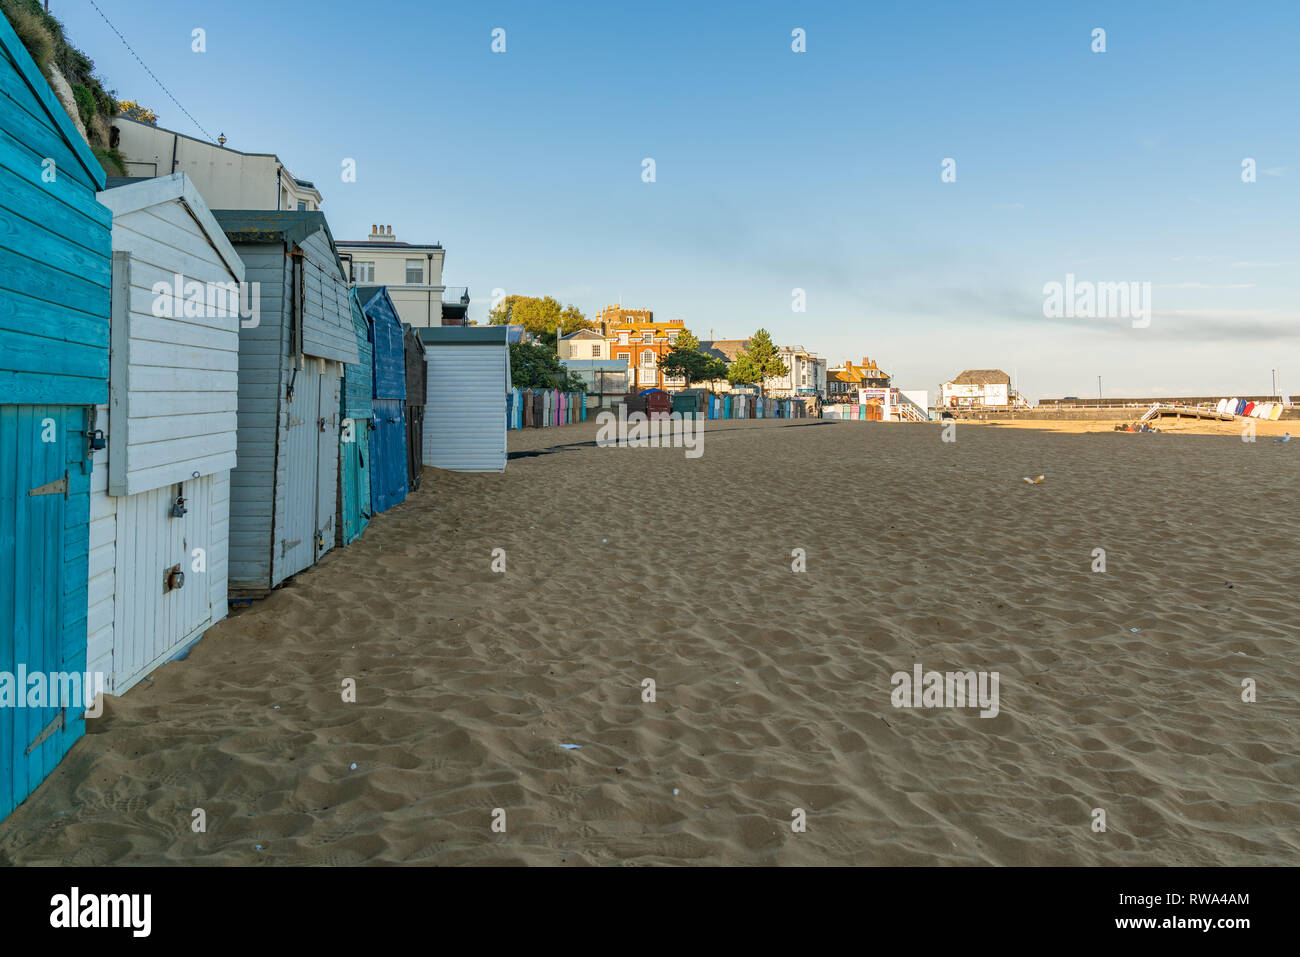 Viking Bay, Broadstairs, Kent, England, UK - September 19, 2017: Beach huts and people on the beach - Stock Image